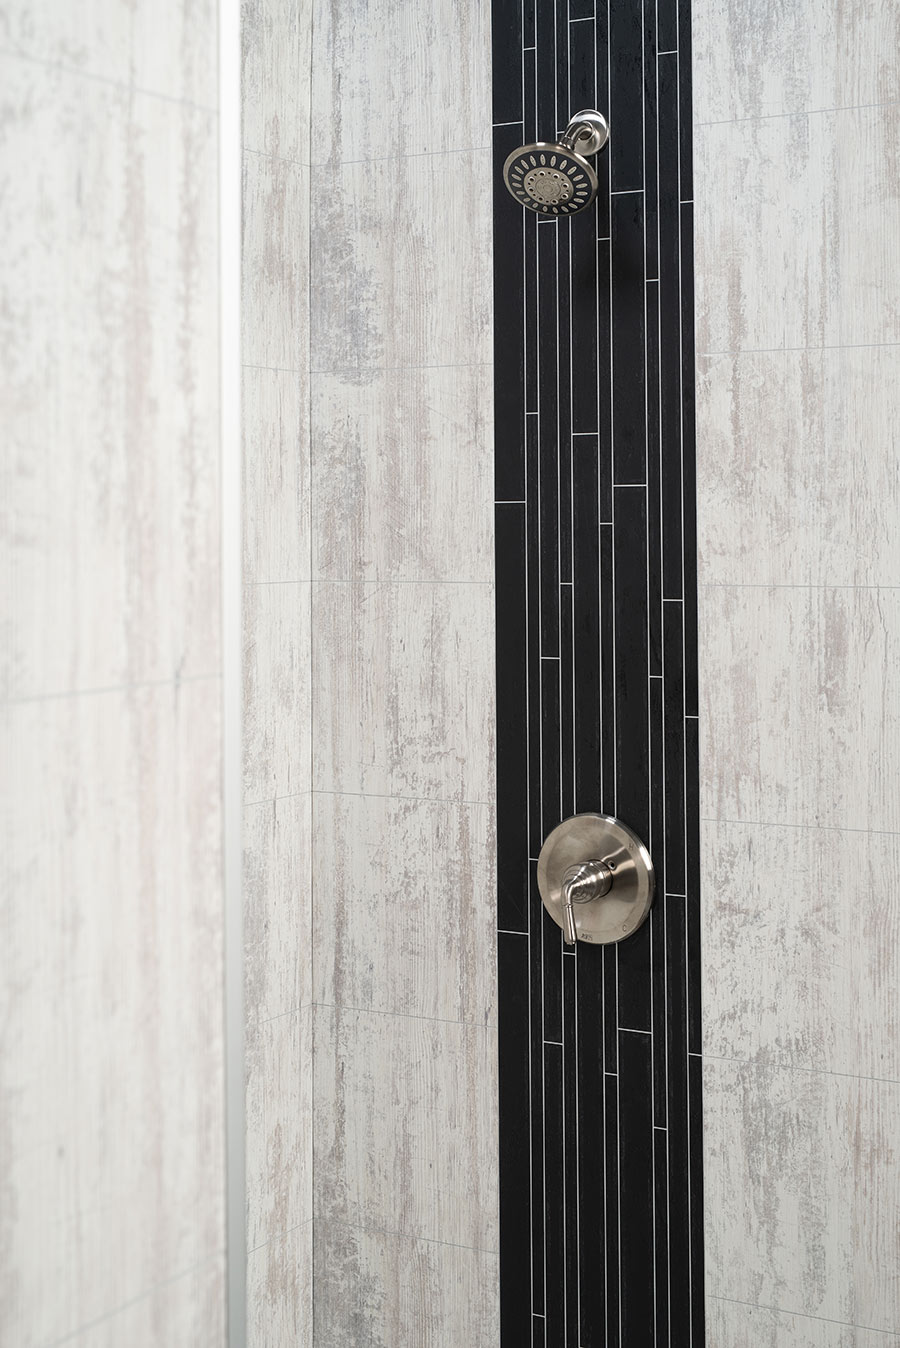 Matte finish laminate shower wall panels antique gray and black accent | Innovate Building Solutions | #WallPanels #ShowerPanels #LaminateWallPanels